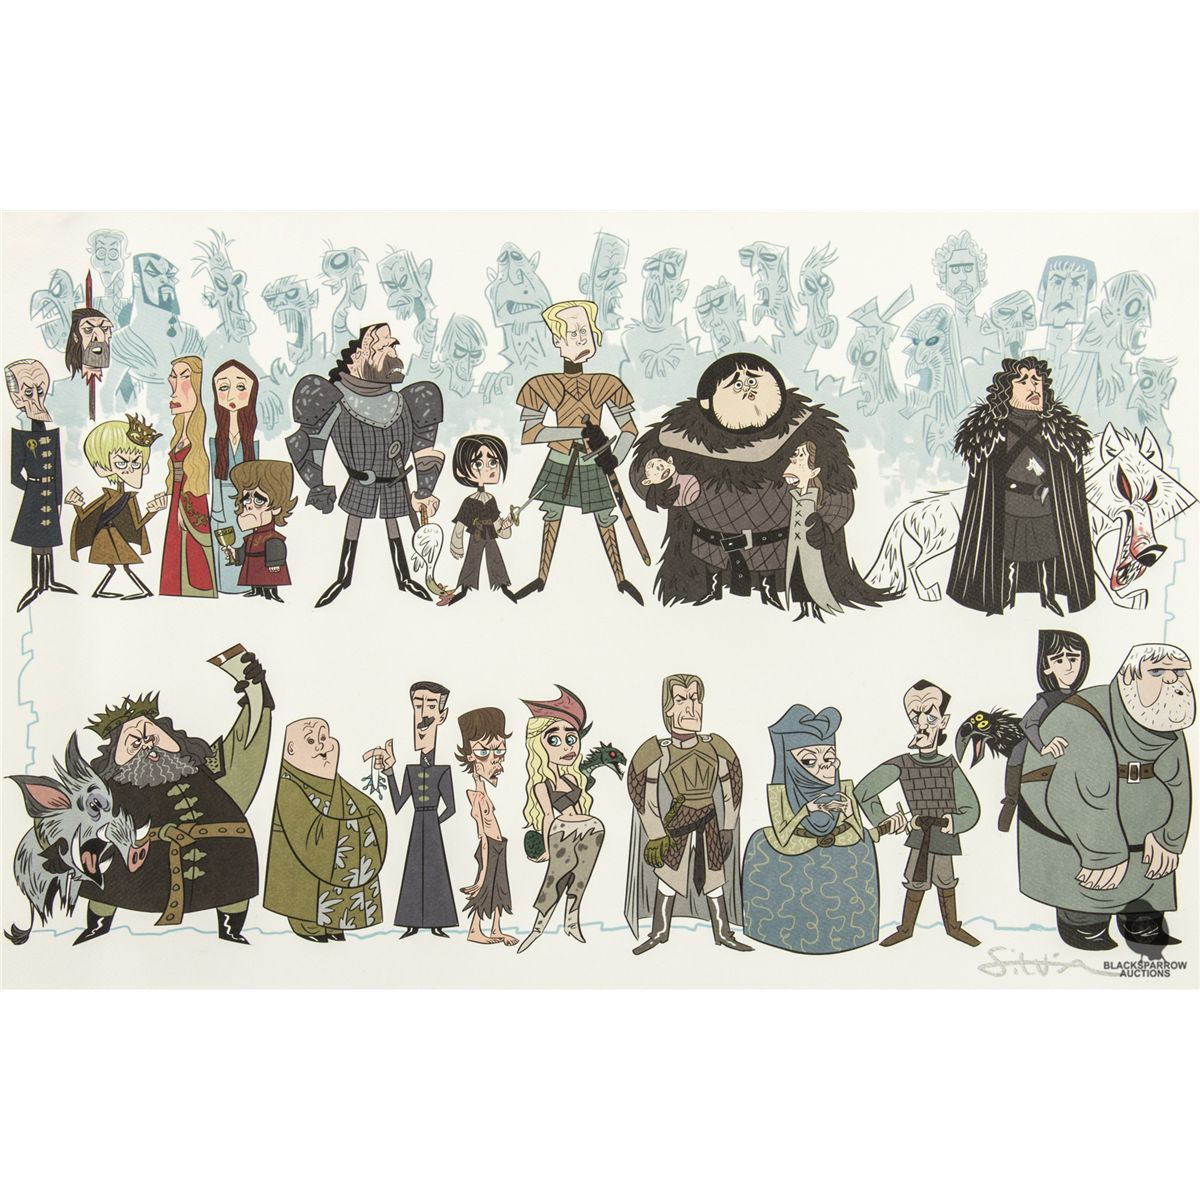 Stephen Silver Character Design App : Game of thrones character print by stephen silver